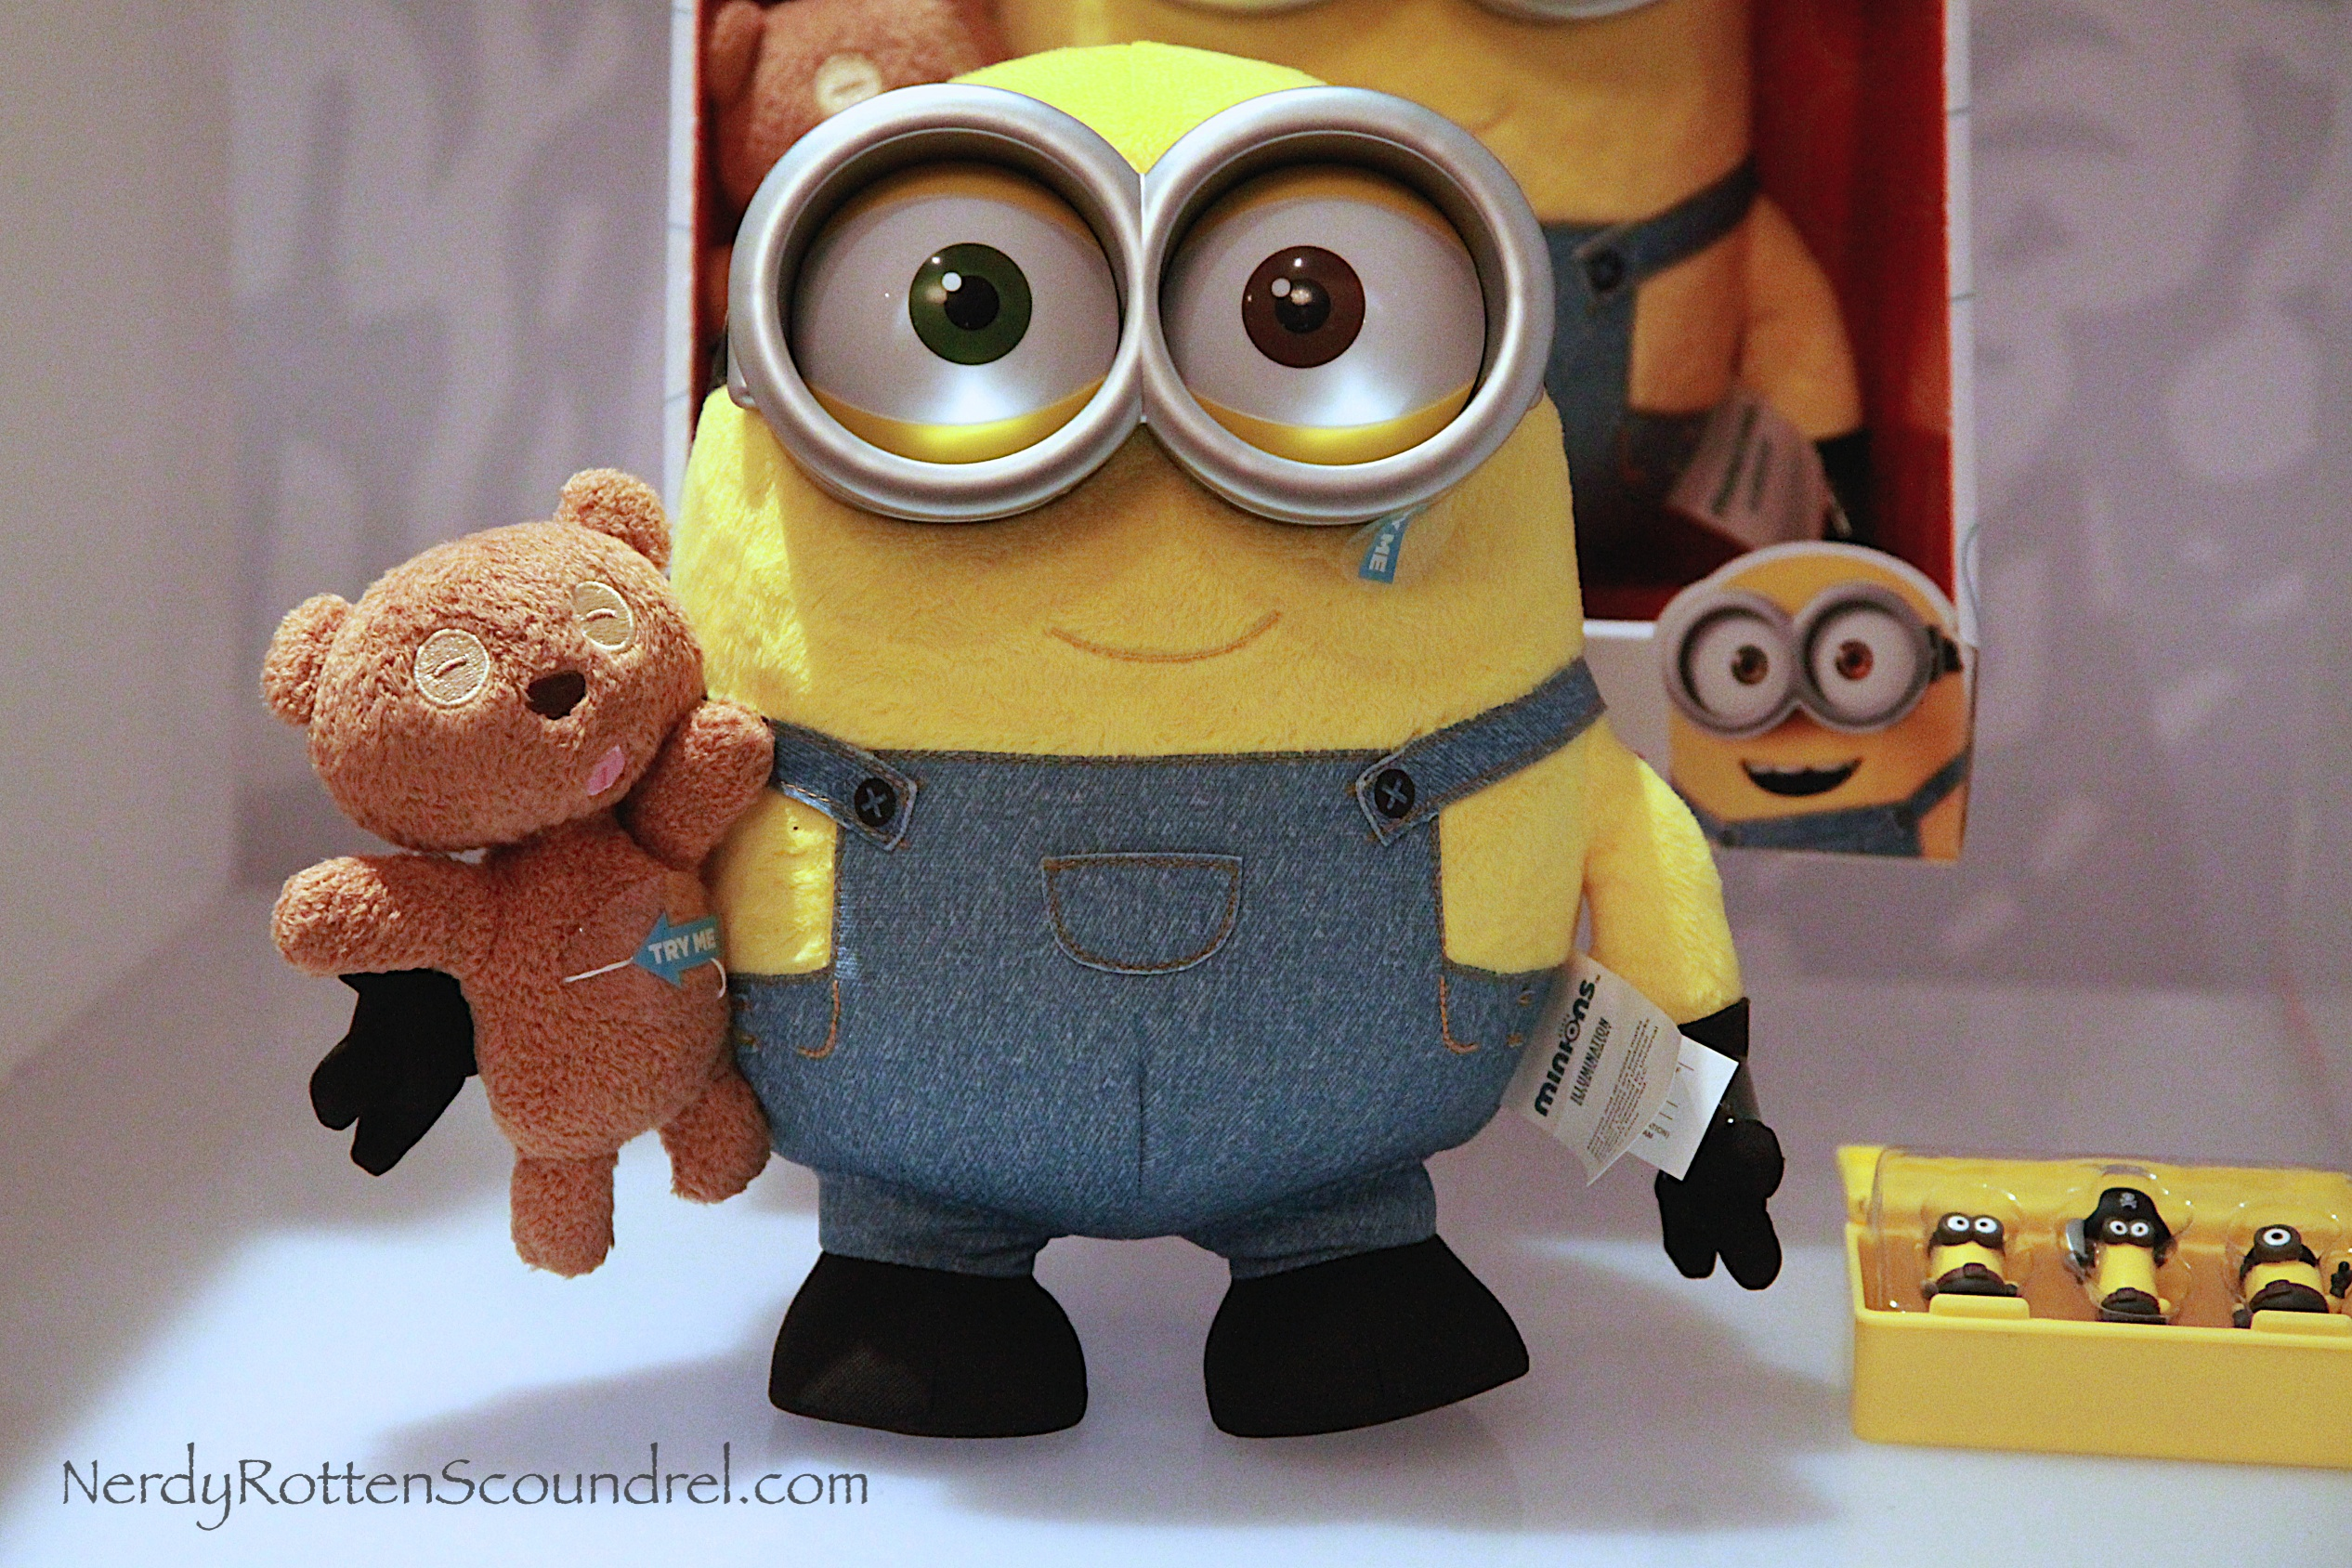 Minion Bob With Teddy Bear Plush Doll IMG 3481 001 3484 3491